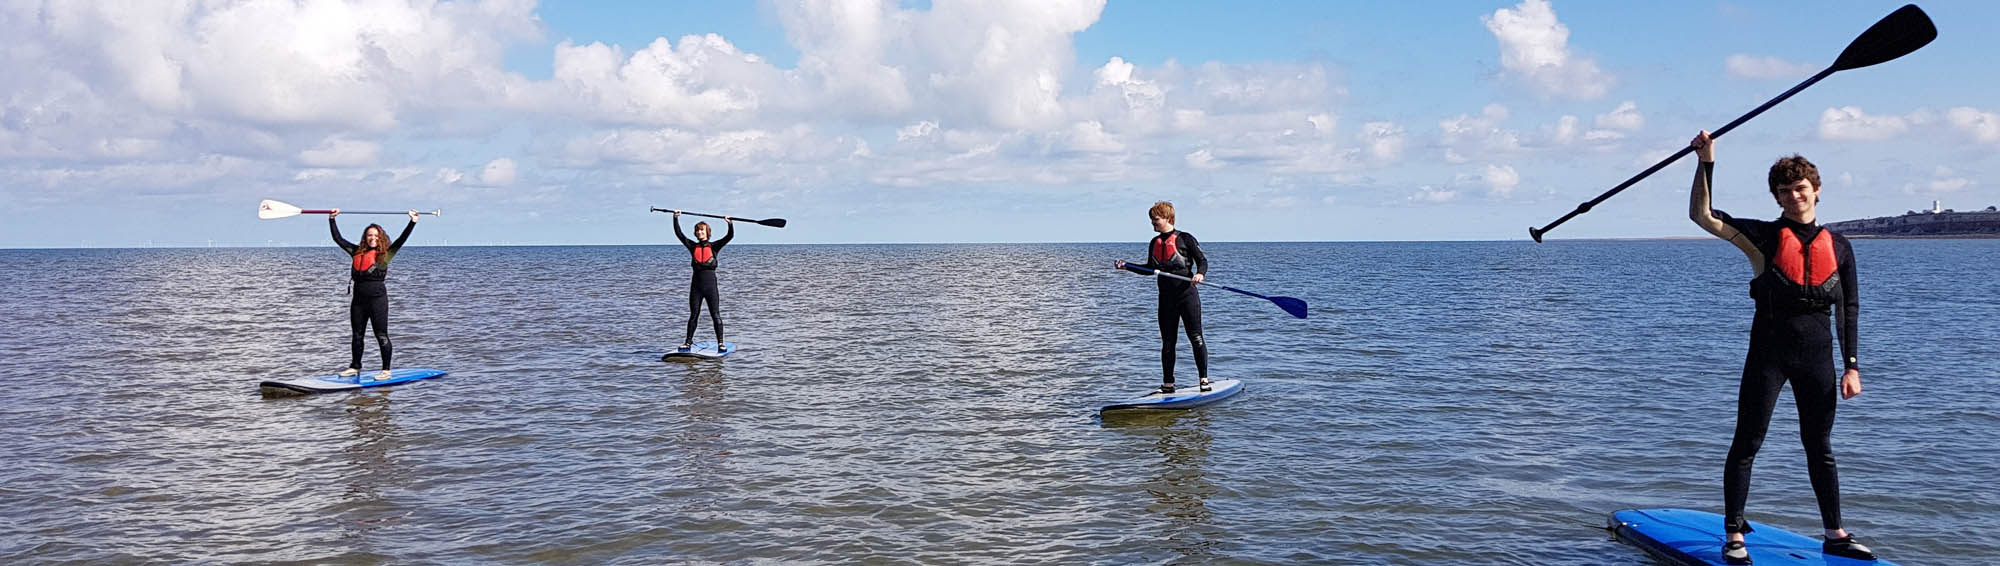 Paddleboard Lessons in Hunstanton